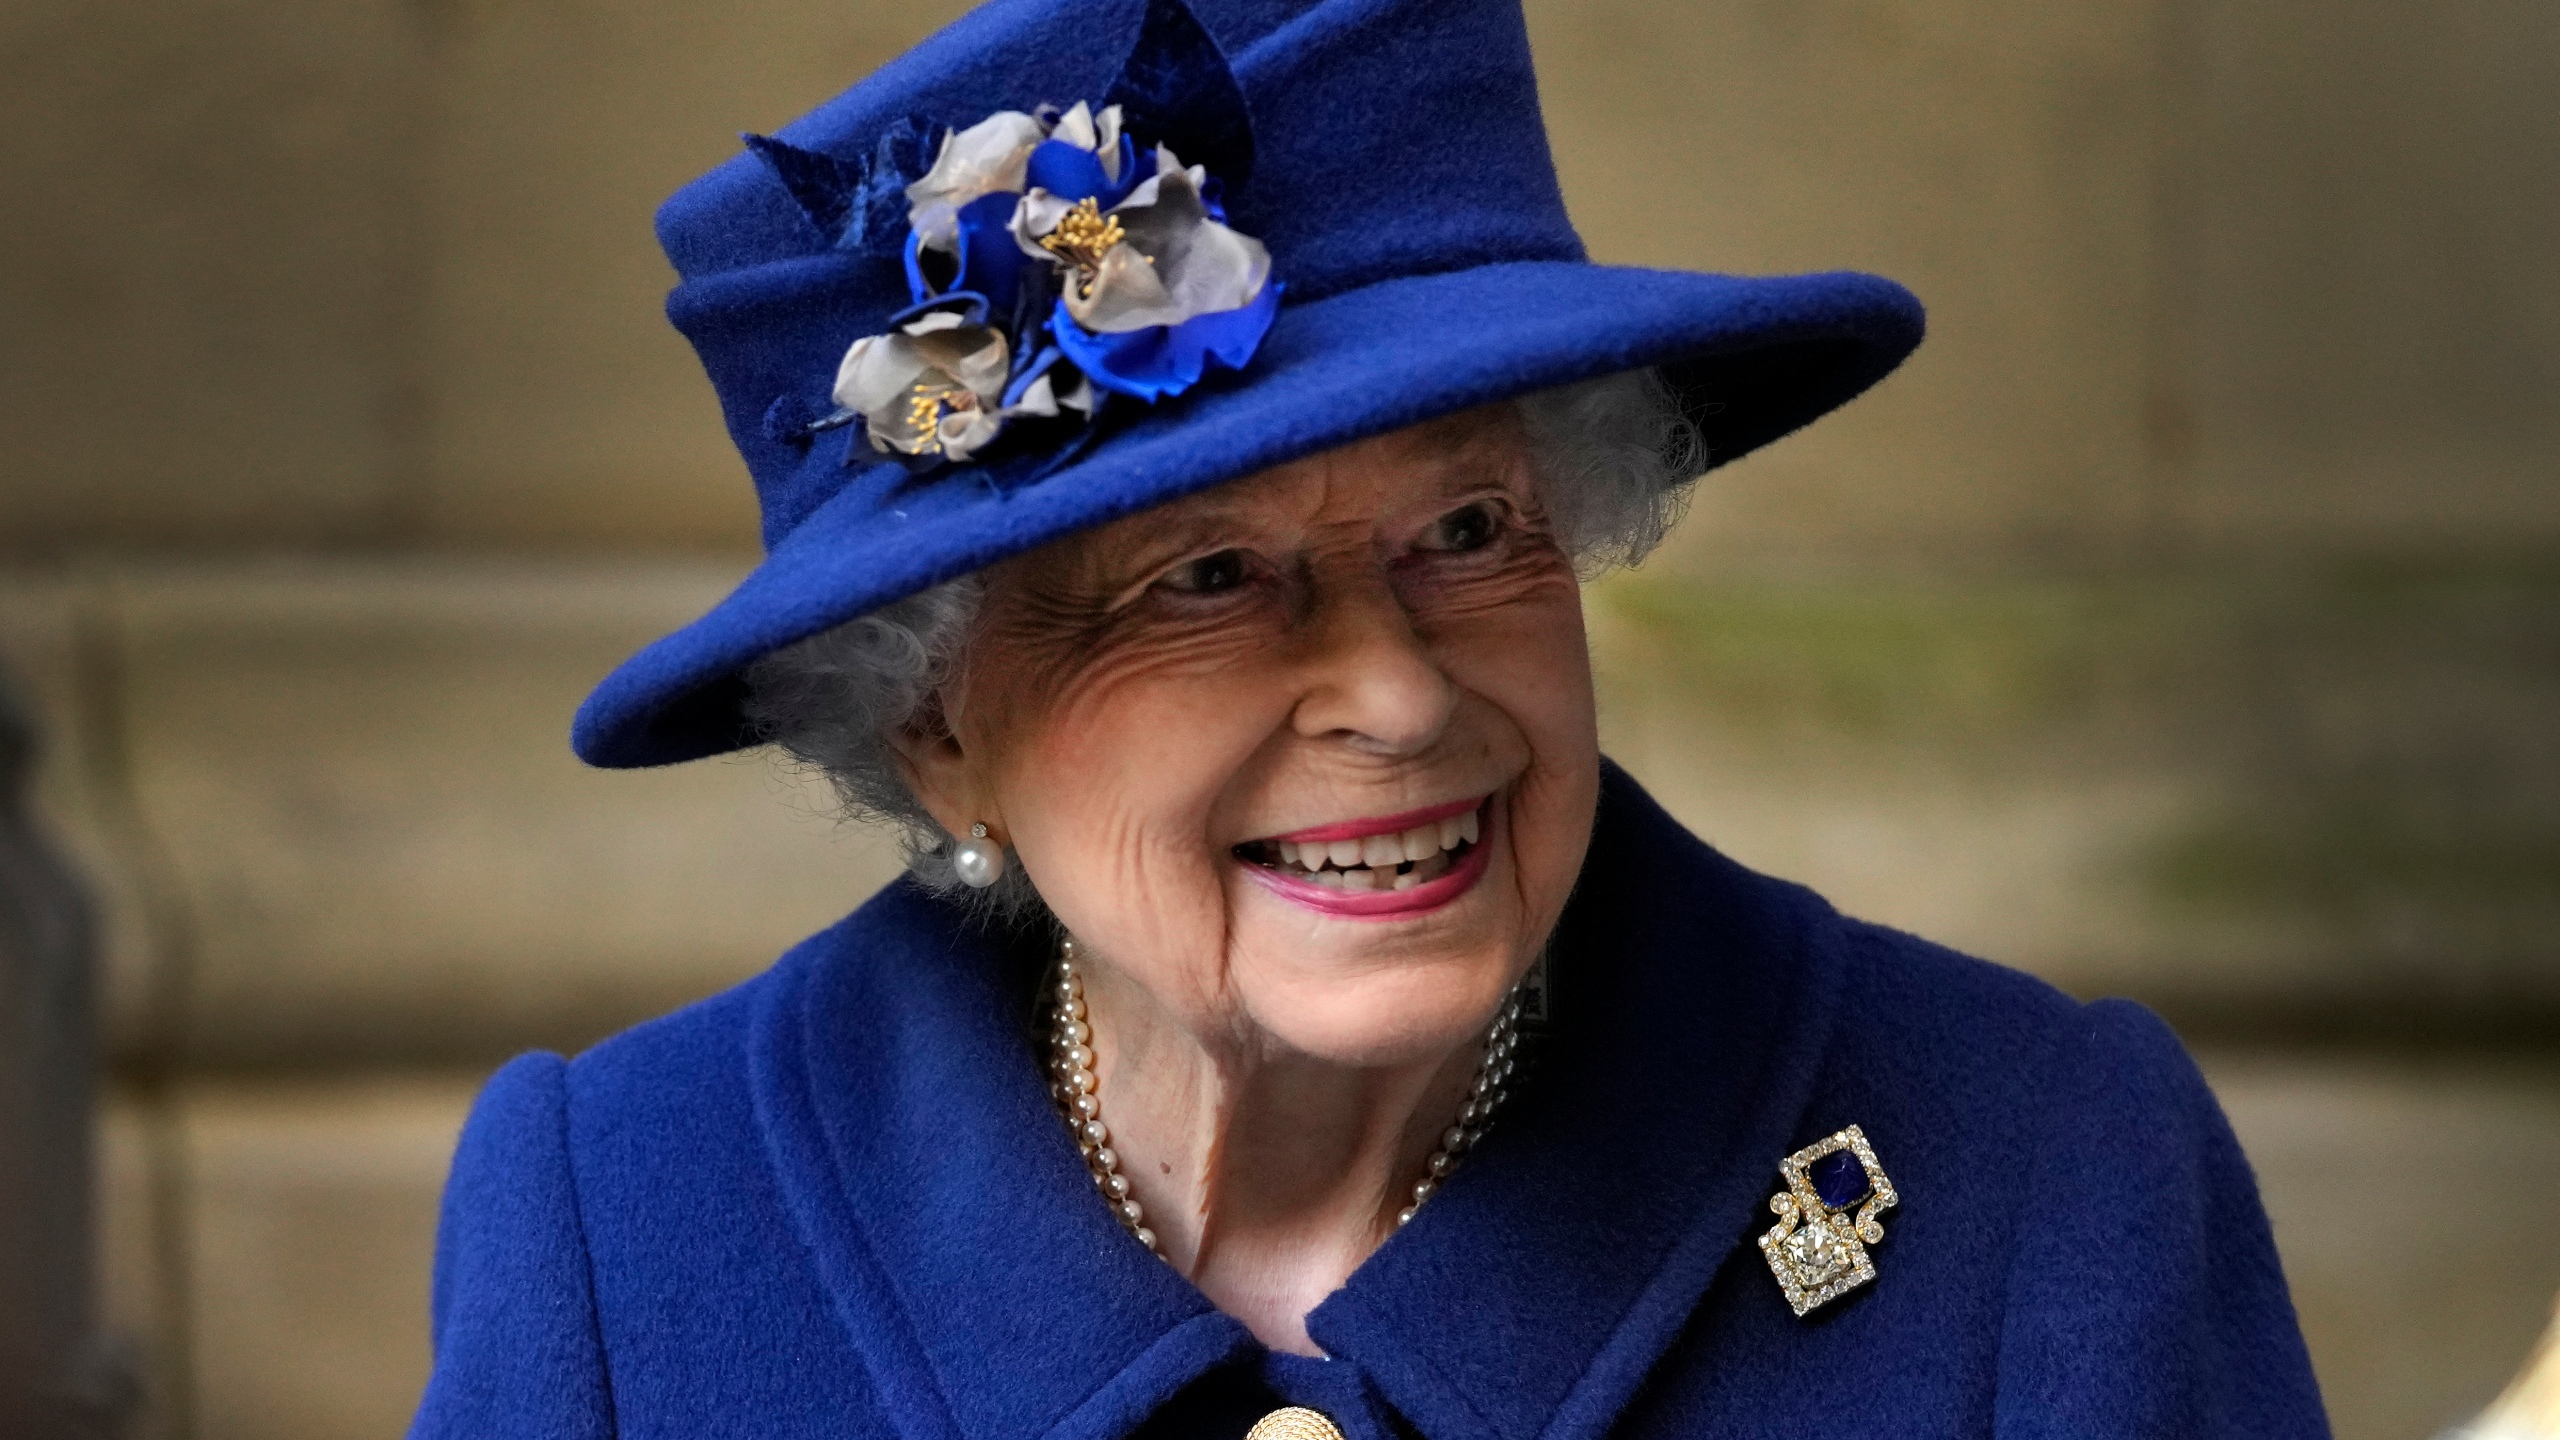 In this Oct. 12, 2021, file photo, Britain's Queen Elizabeth II, Patron, leaves after attending a Service of Thanksgiving to mark the Centenary of the Royal British Legion at Westminster Abbey in London. (AP Photo/Frank Augstein, Pool, File)